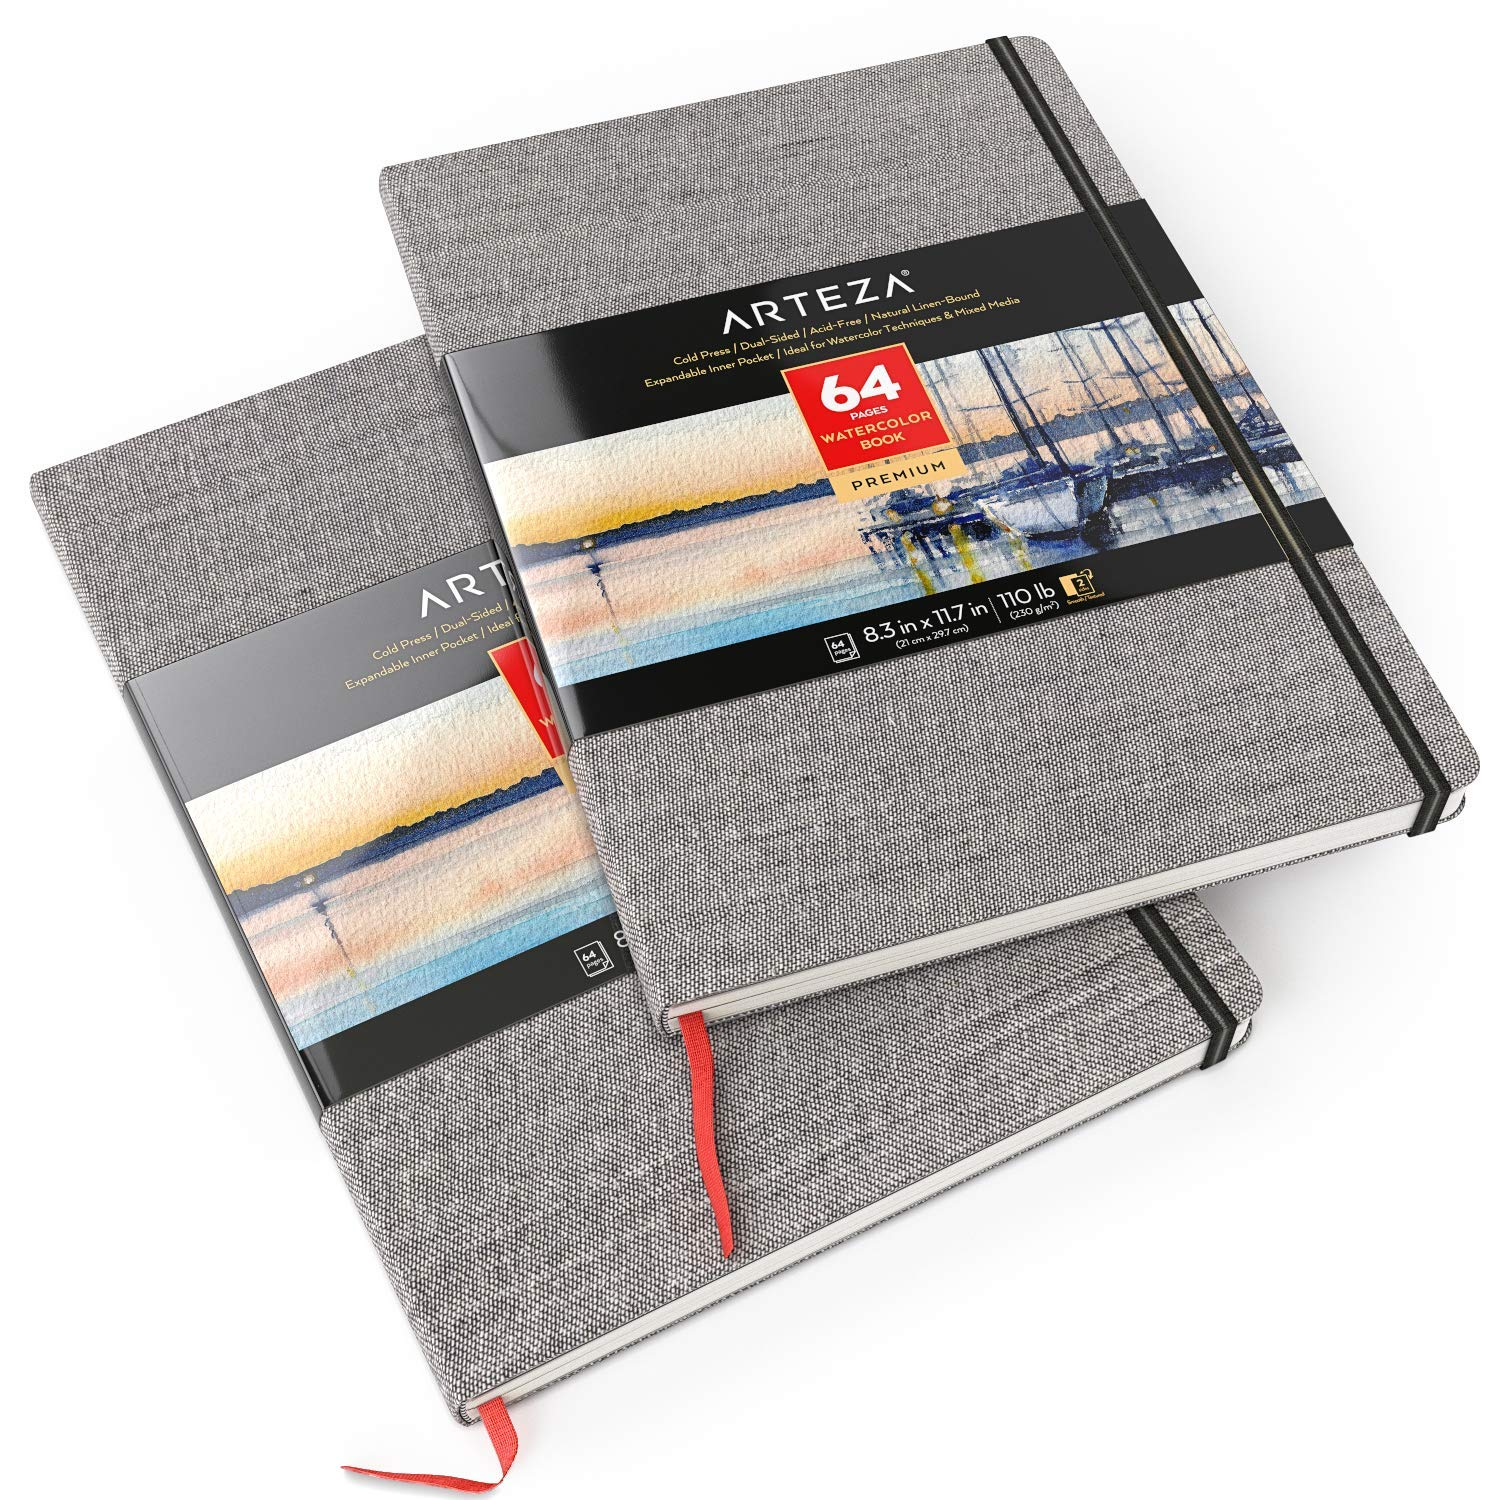 ARTEZA 8.3x11.7'' Watercolor Book, Pack of 2 Watercolor Sketchbooks, 64 Sheets per Pad, 110lb/230gsm, Linen Bound with Bookmark Ribbon and Elastic Strap, for Watercolor Techniques and Mixed Media by ARTEZA (Image #1)